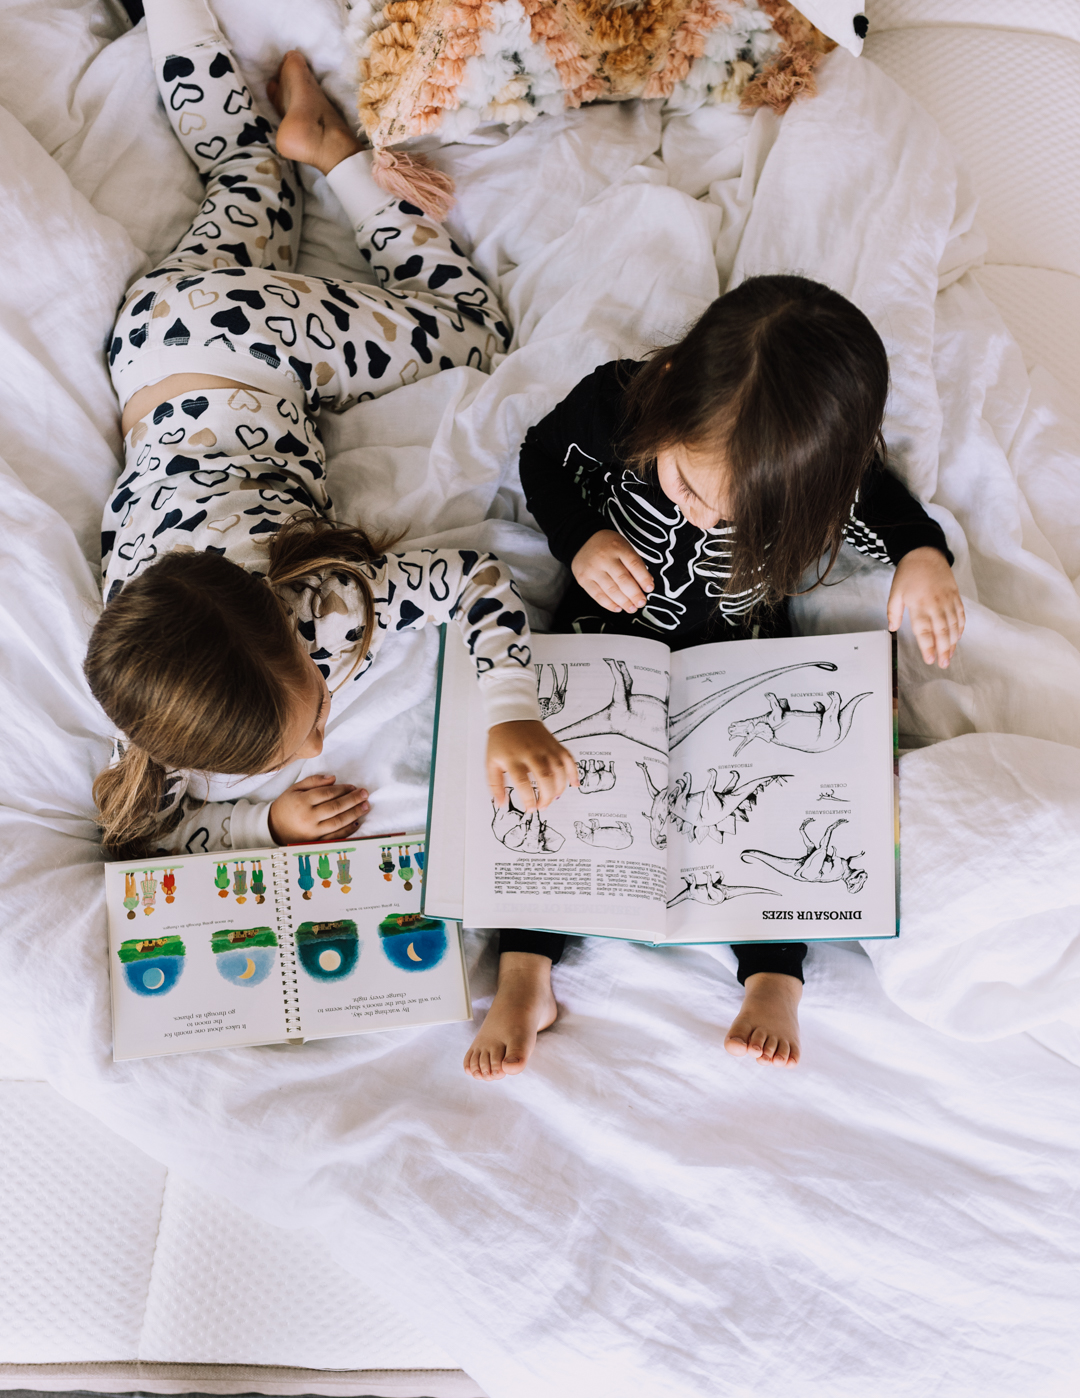 reading together in bed, one of our favorite bedtime rituals | thelovedesignedlife.com #bedtimerituals #dreamcloudsleep